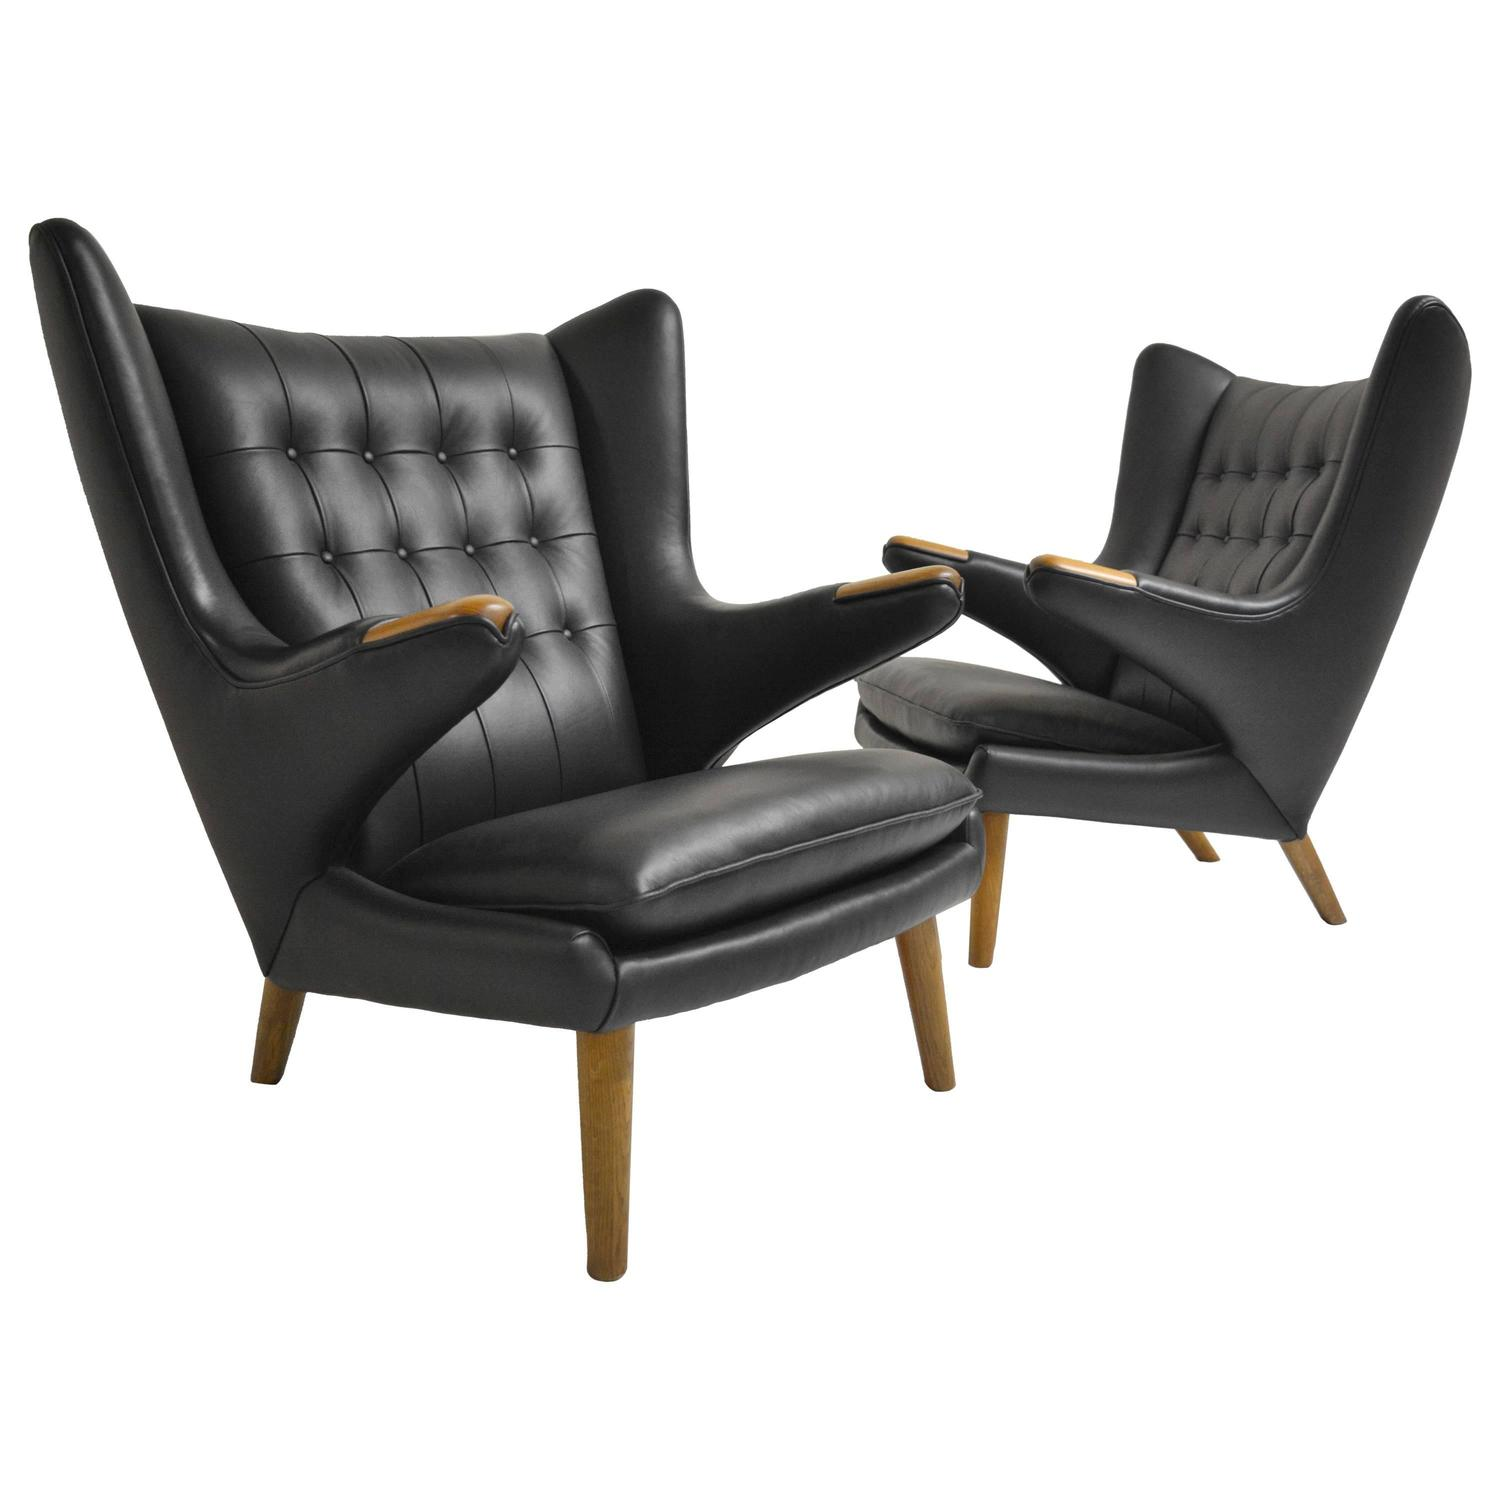 Fine Pair Of Early Papa Bear Chairs By Hans Wegner In Black Leather Ibusinesslaw Wood Chair Design Ideas Ibusinesslaworg